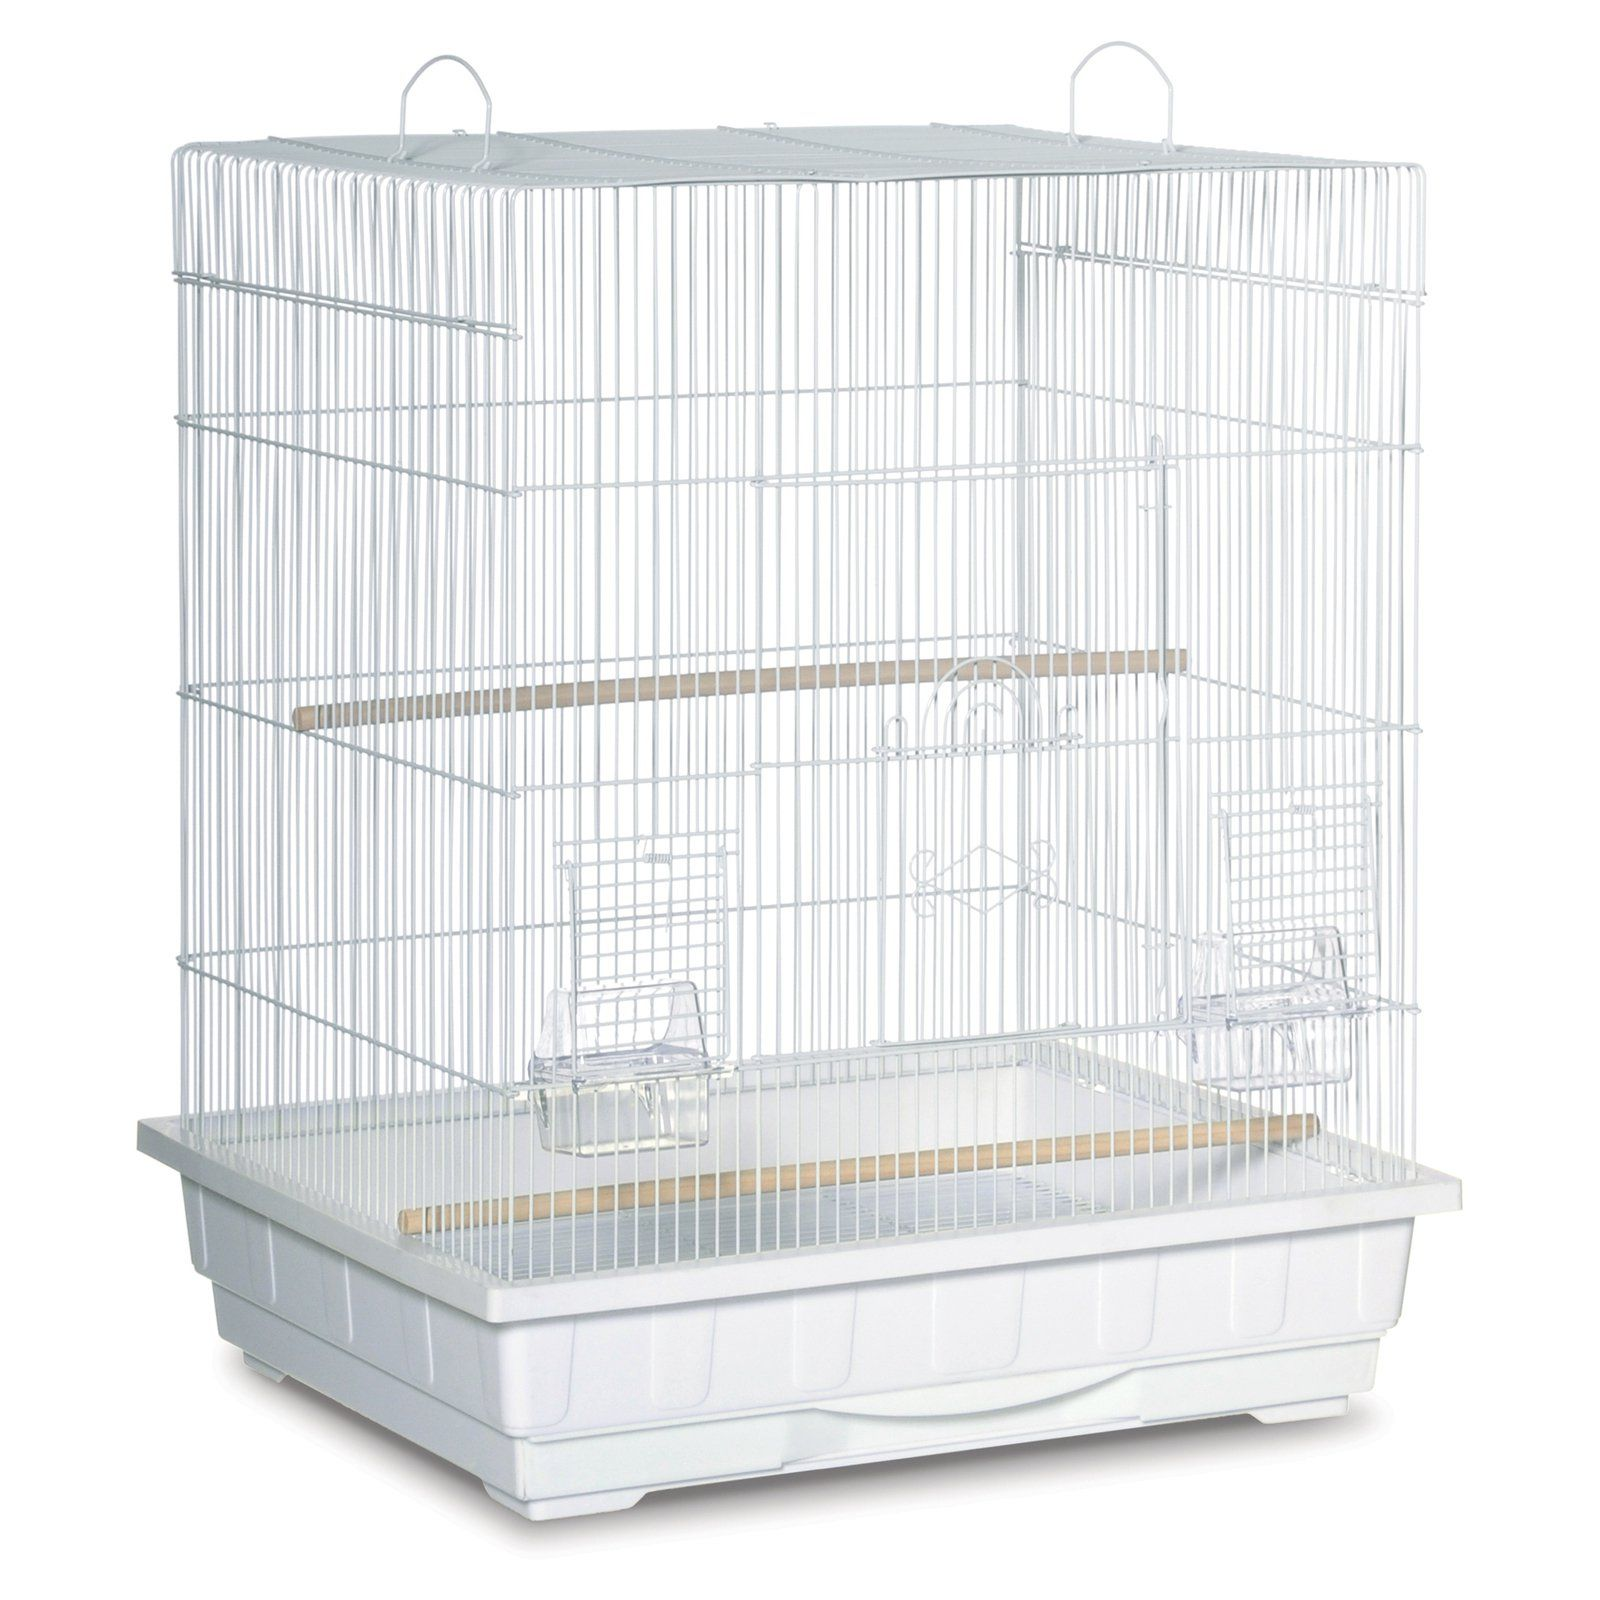 Prevue Pet Products Square Top Cockatiel Cage White | Products in